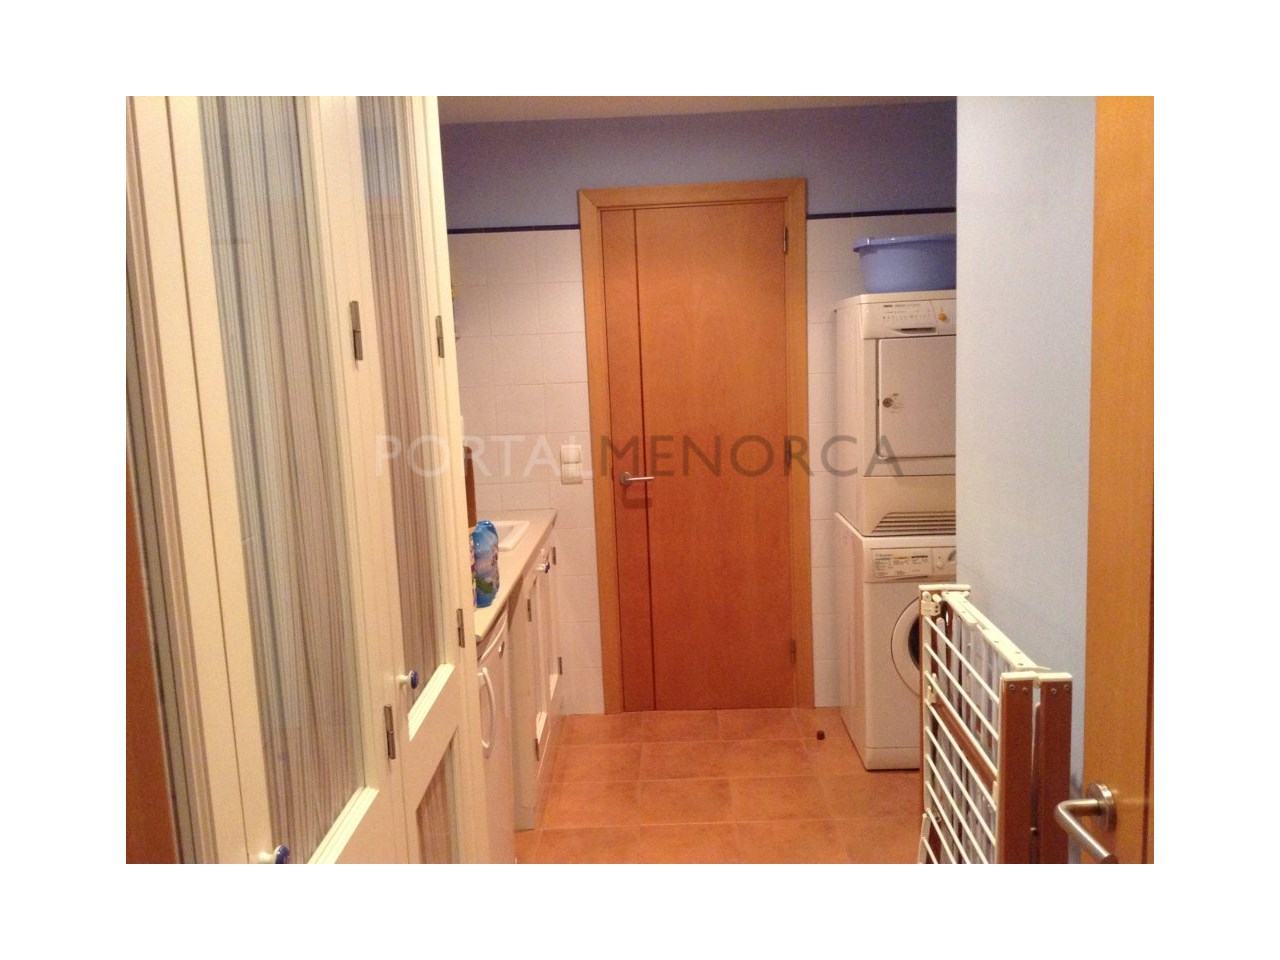 Spacious renovated apartment for sale in Ciutadella-Laundry